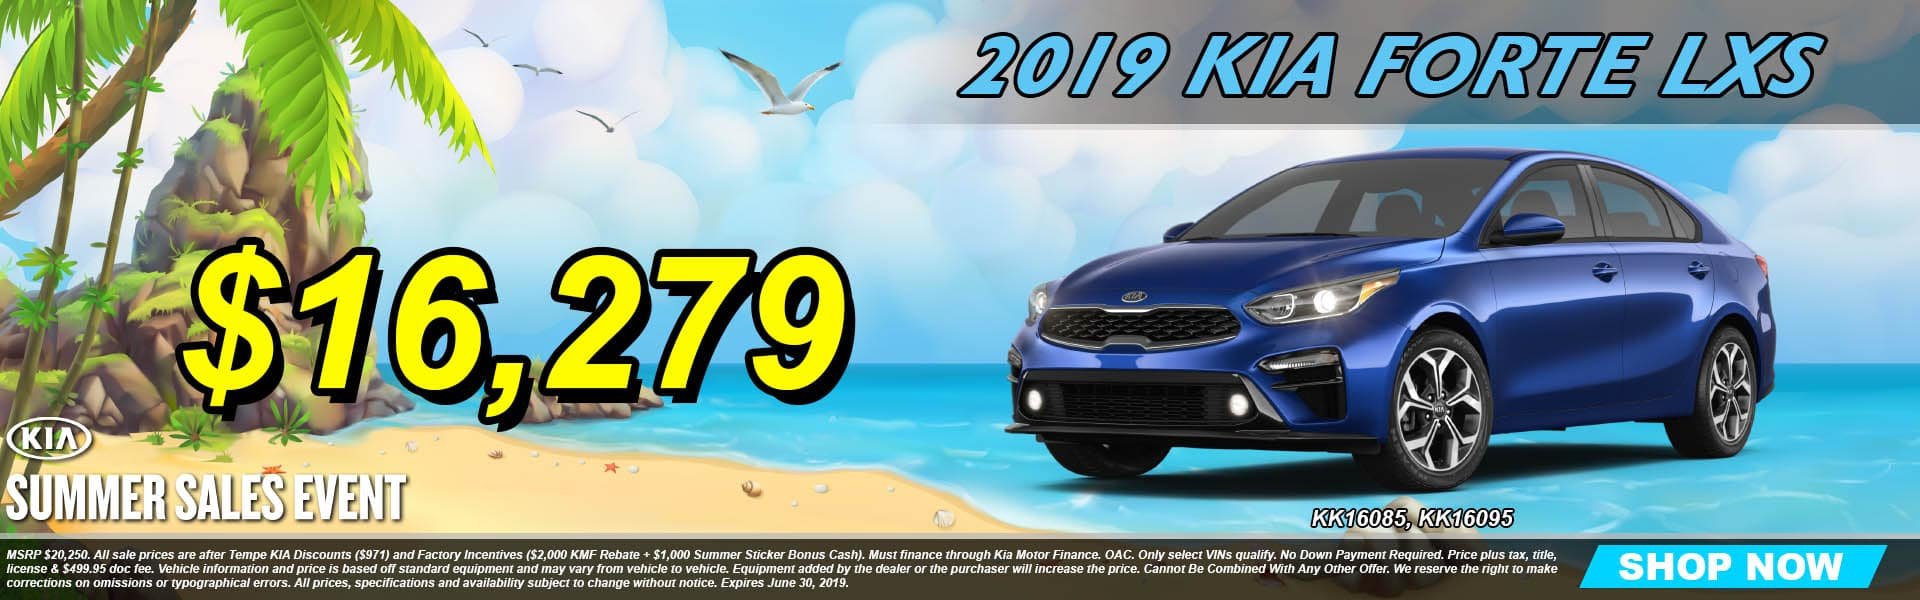 2019 Kia Forte LXS Summer Sales Event